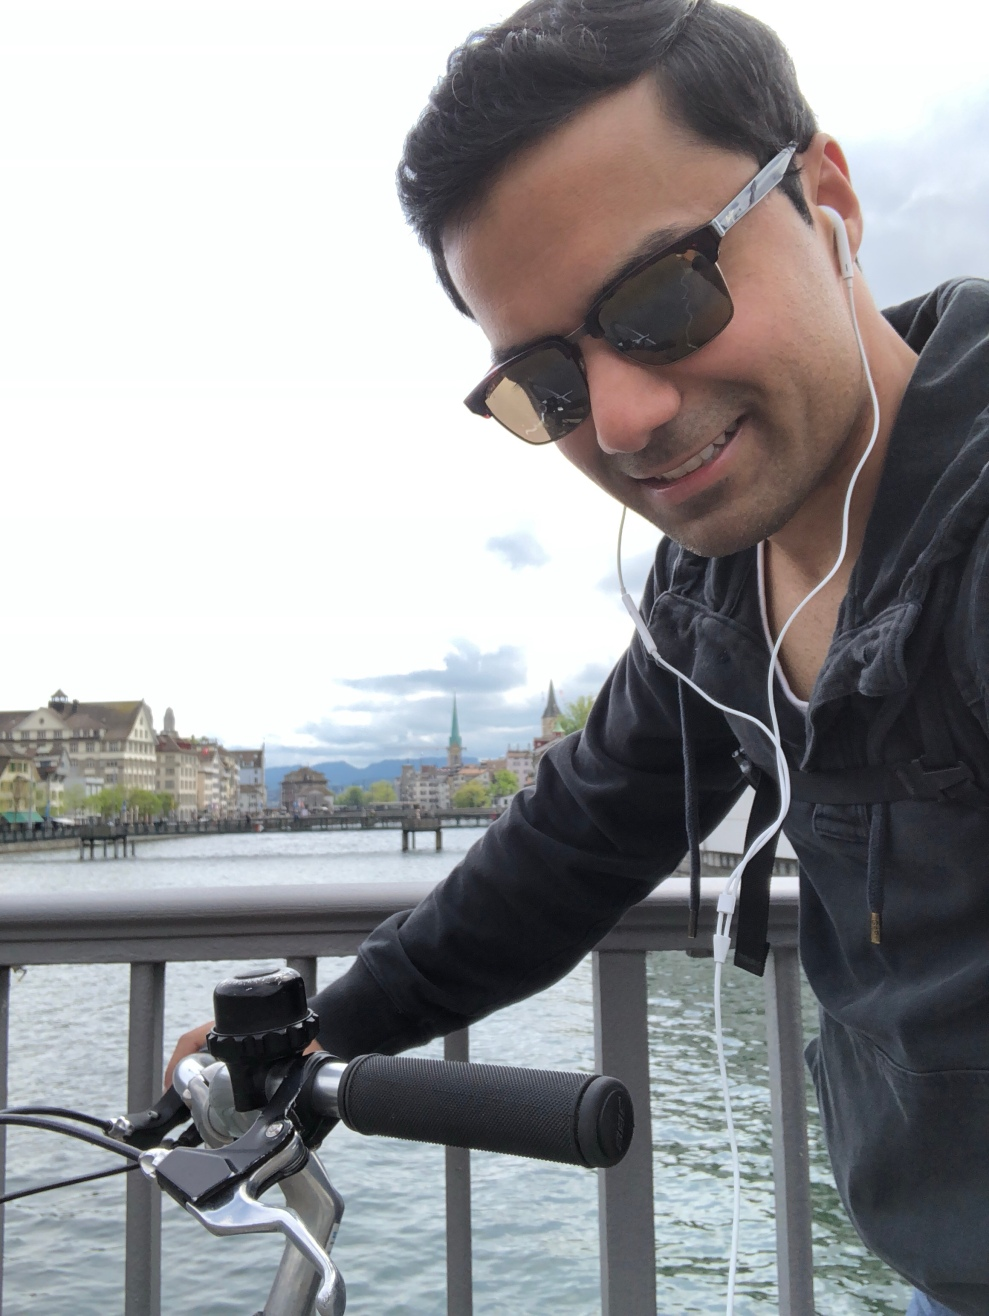 Cruising around Zurich